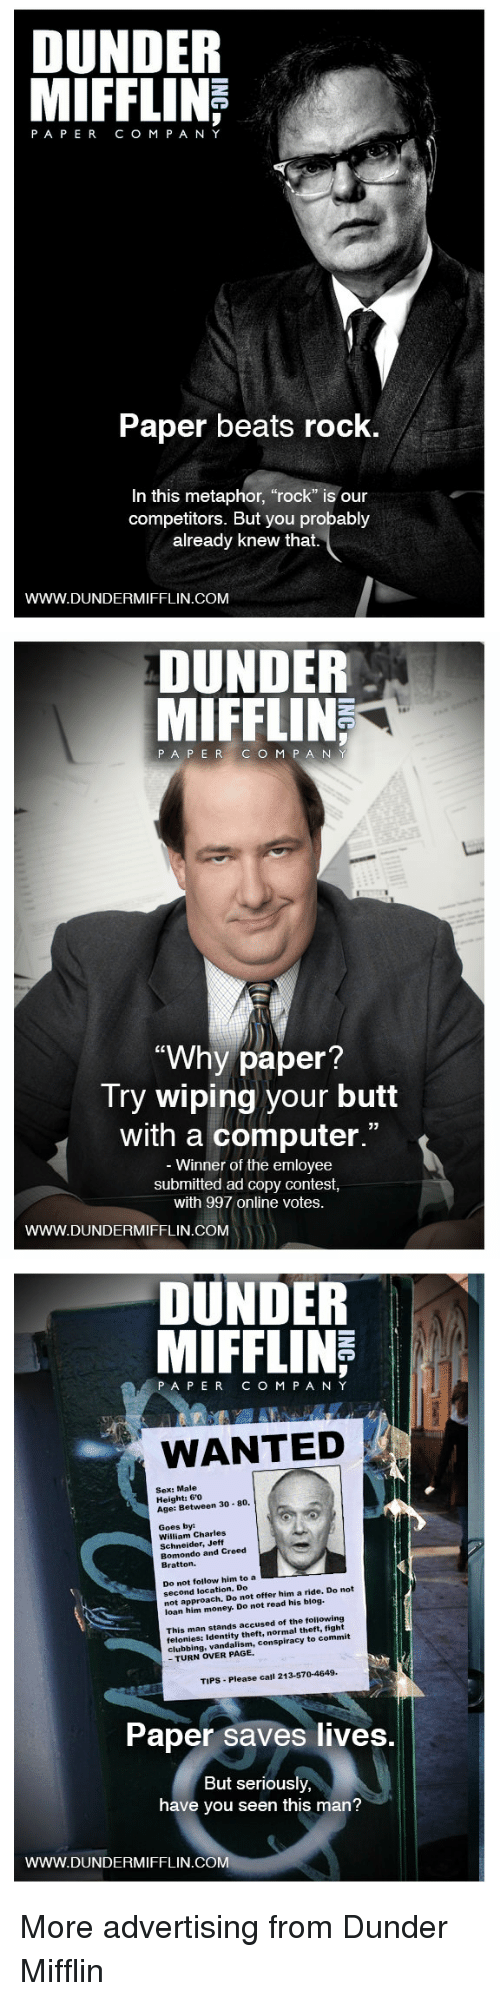 """Butt, Money, and Sex: DUNDER  PAPERCO M P A NY  Paper beats rock  In this metaphor, """"rock"""" is our  competitors. But you probably  already knew that.  WWW.DUNDERMIFFLIN.COM   DUNDER  MIFFLIN  187  PA P ERC O M P A N  """"Why paper  Try wiping your butt  with a computer.""""  Winner of the emloyee  submitted ad copy contest  with 997 online votes.  WWW.DUNDERMIFFLIN.COM   DUNDER  MIFFLINE  PAPERCOM PANY  WANTED  Sex: Male  Height: 60  Age: Between 30 80.  Goes by  William Charles  Schneider, Jeff  Bomondo and Creed  Bratton.  Do not follow him to a EEE  second location. Do  not approach. Do not offer him a ride. Do not  loan him money. Do not read his blog.  This man stands accused of the following  felonies: Identity theft, normal theft, fight  clubbing, vandalism, conspiracy to commit  - TURN OVER PAGE.  TIPS-Please call 213-570-4649  Paper saves lives.  But seriously,  have you seen this man?  WWW.DUNDERMIFFLIN.COM More advertising from Dunder Mifflin"""